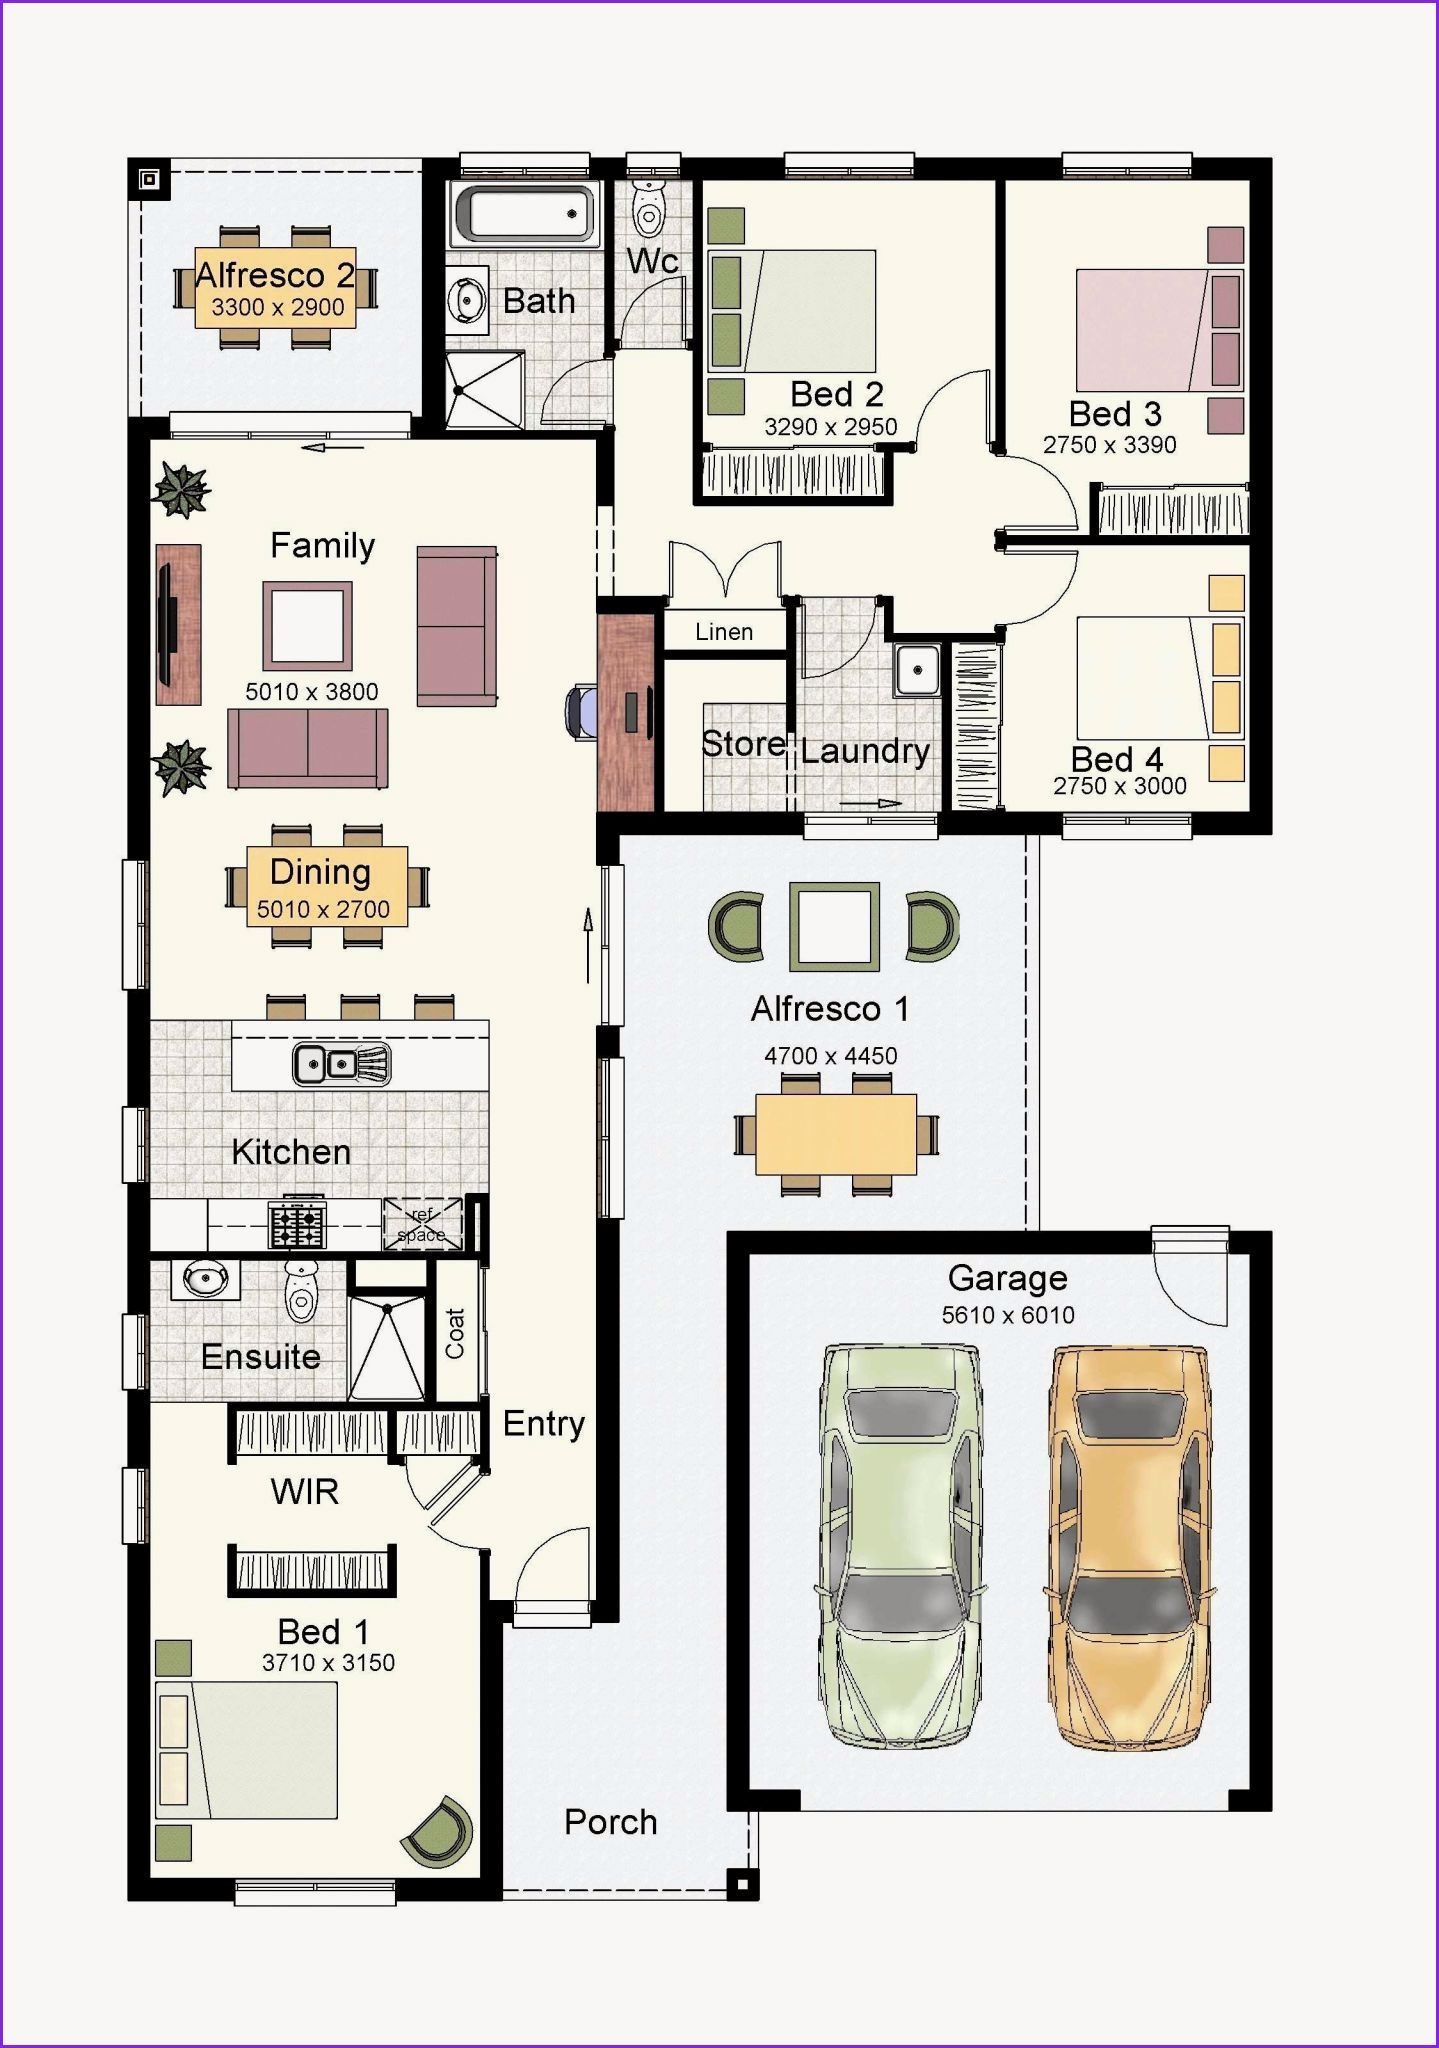 Awesome Guest House Floor Plans In 2020 Mansion Floor Plan Bedroom House Plans Modern House Floor Plans